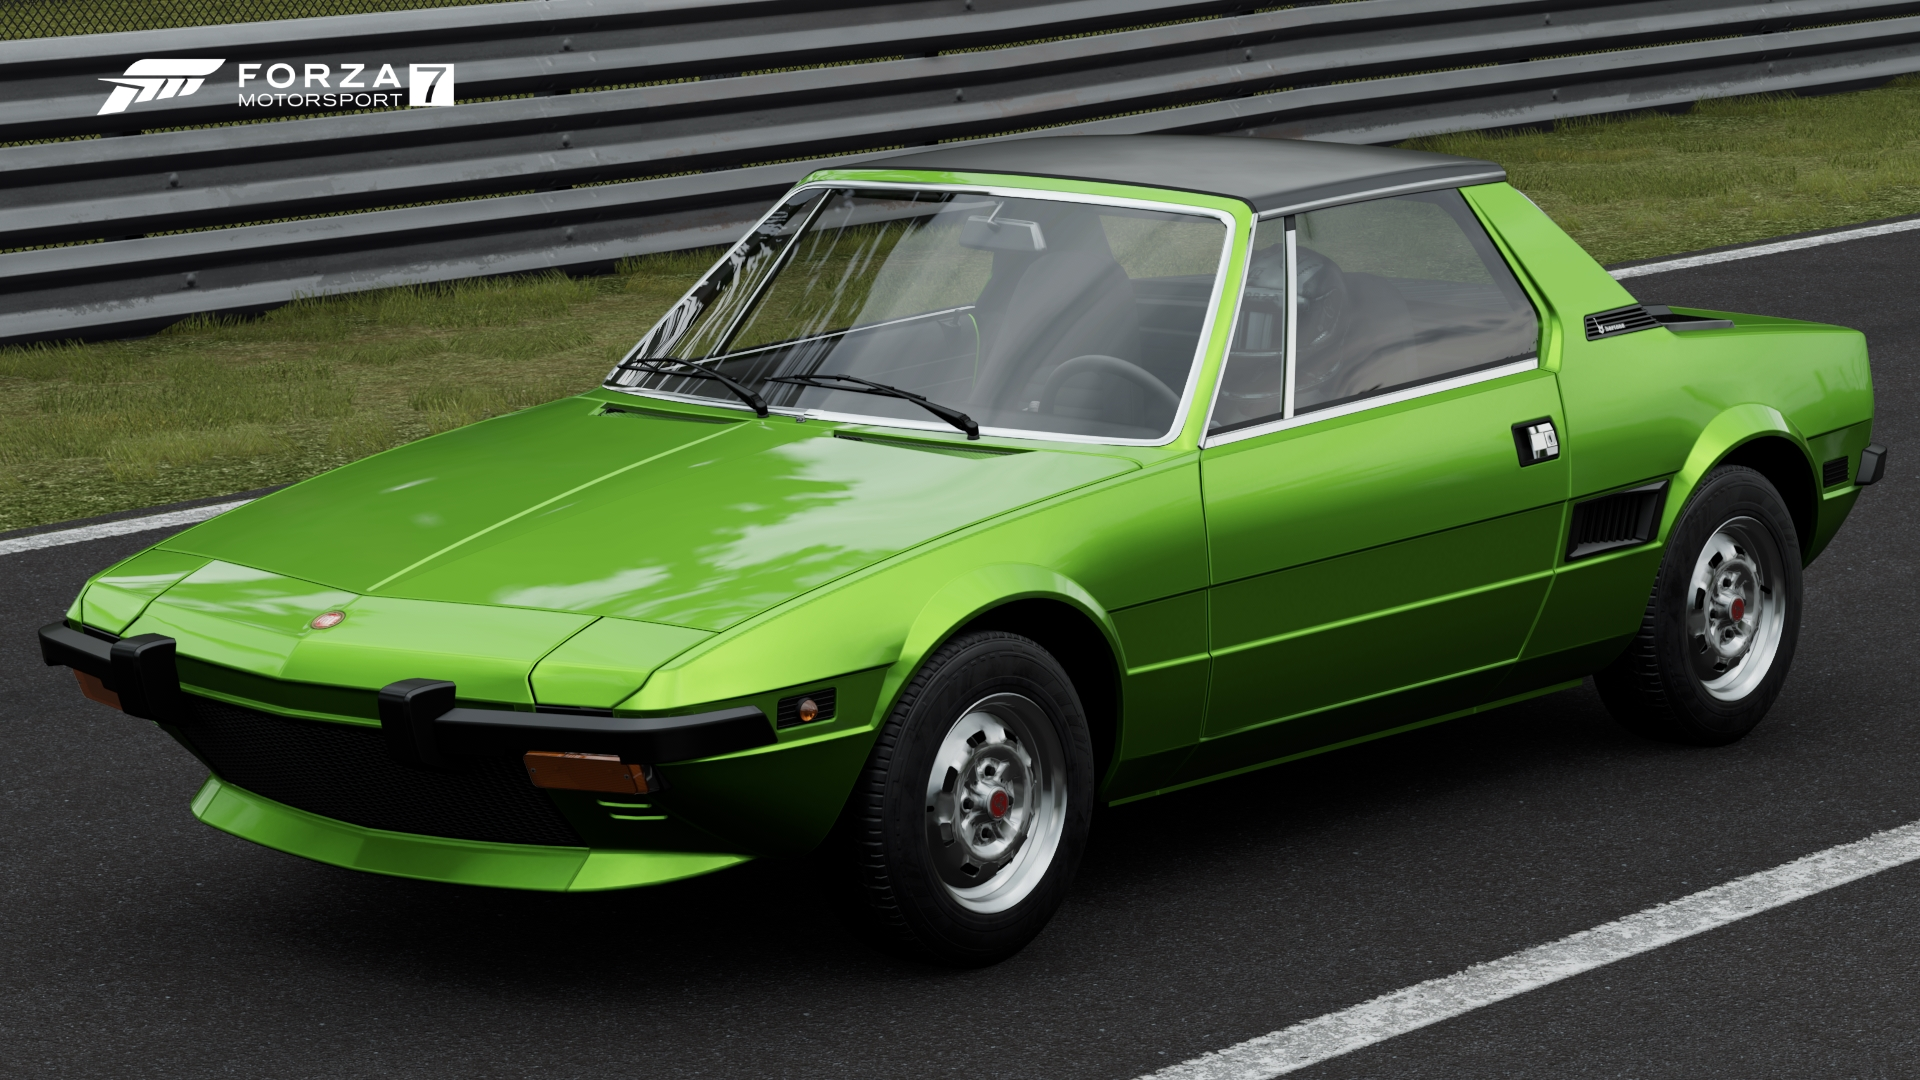 fiat x1 9 forza motorsport wiki fandom powered by wikia. Black Bedroom Furniture Sets. Home Design Ideas